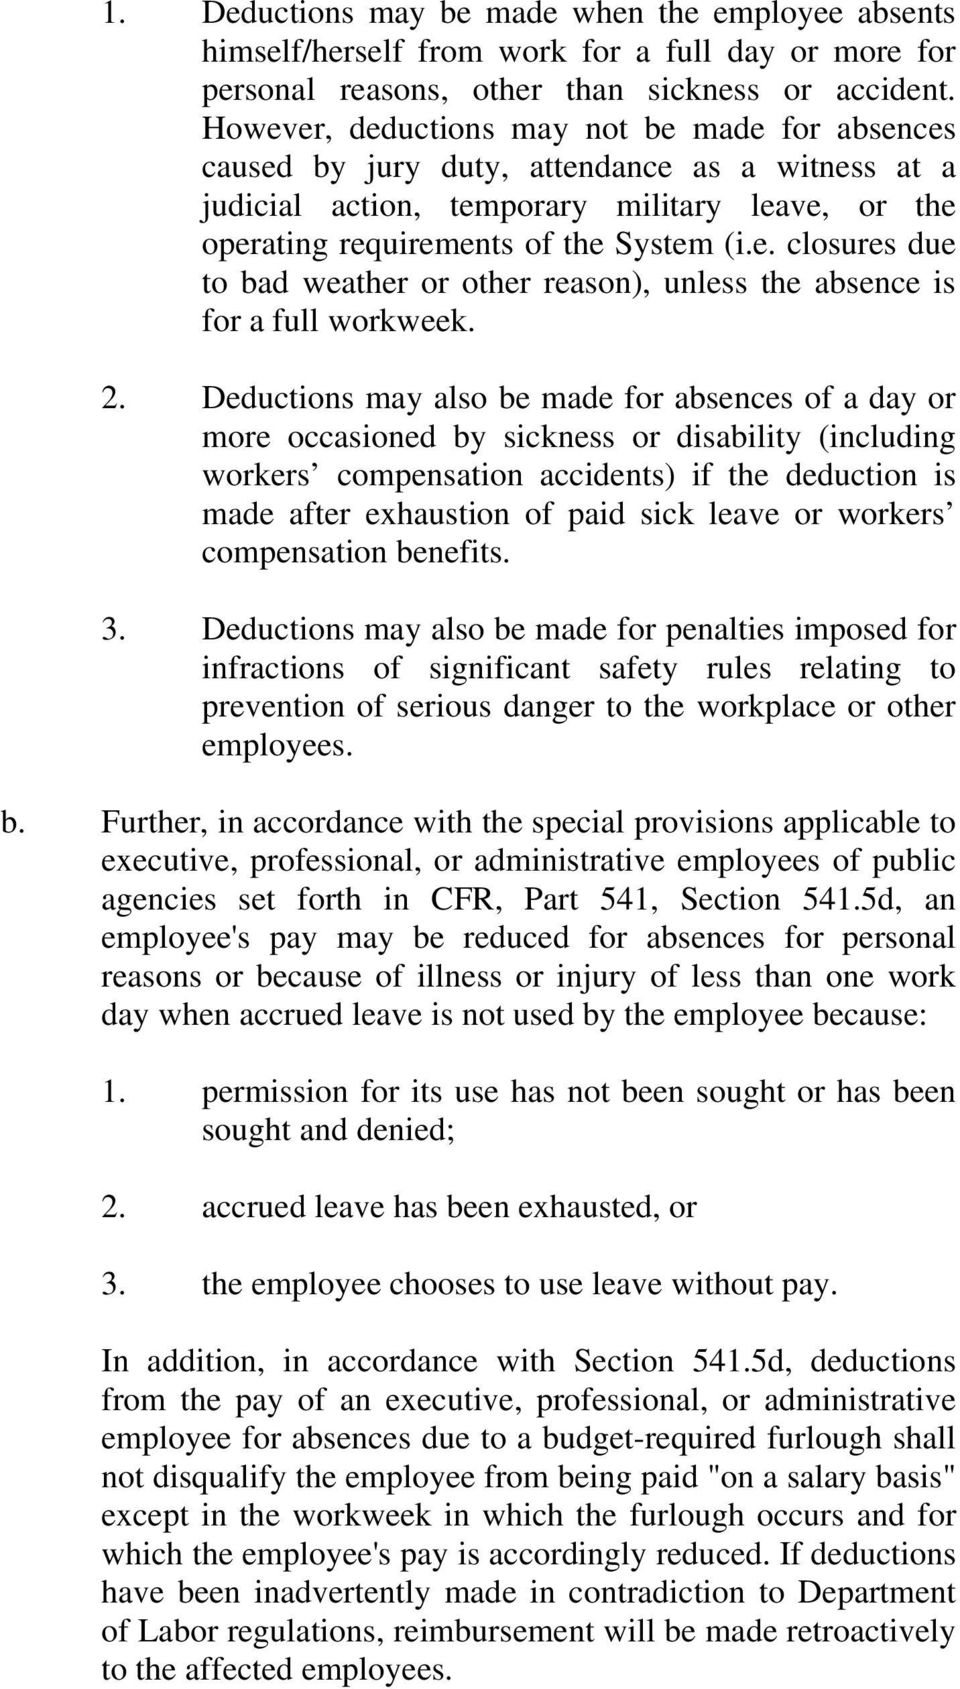 2. Deductions may also be made for absences of a day or more occasioned by sickness or disability (including workers compensation accidents) if the deduction is made after exhaustion of paid sick